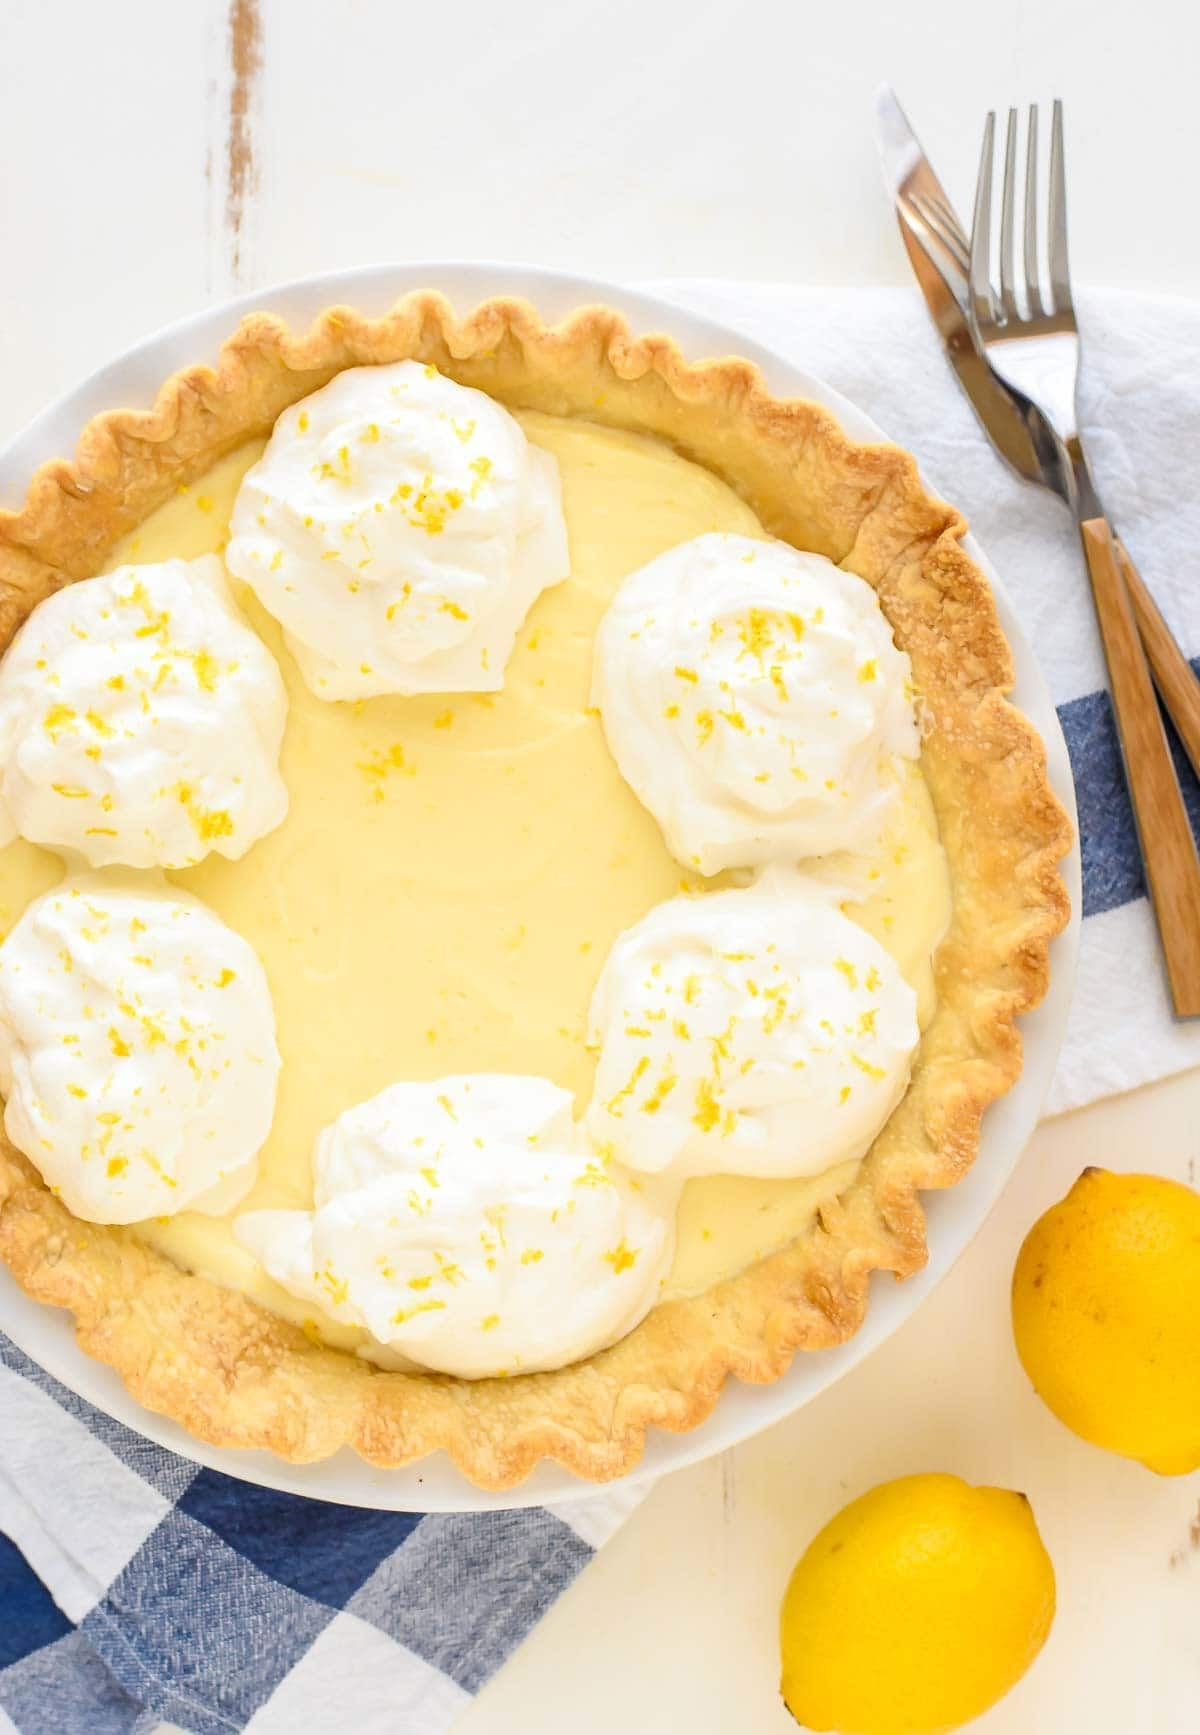 A lusciously rich and silky Lemon Cream, made with cream cheese and lemon custard. This is my grandmother's recipe and has been in our family for 50 years!